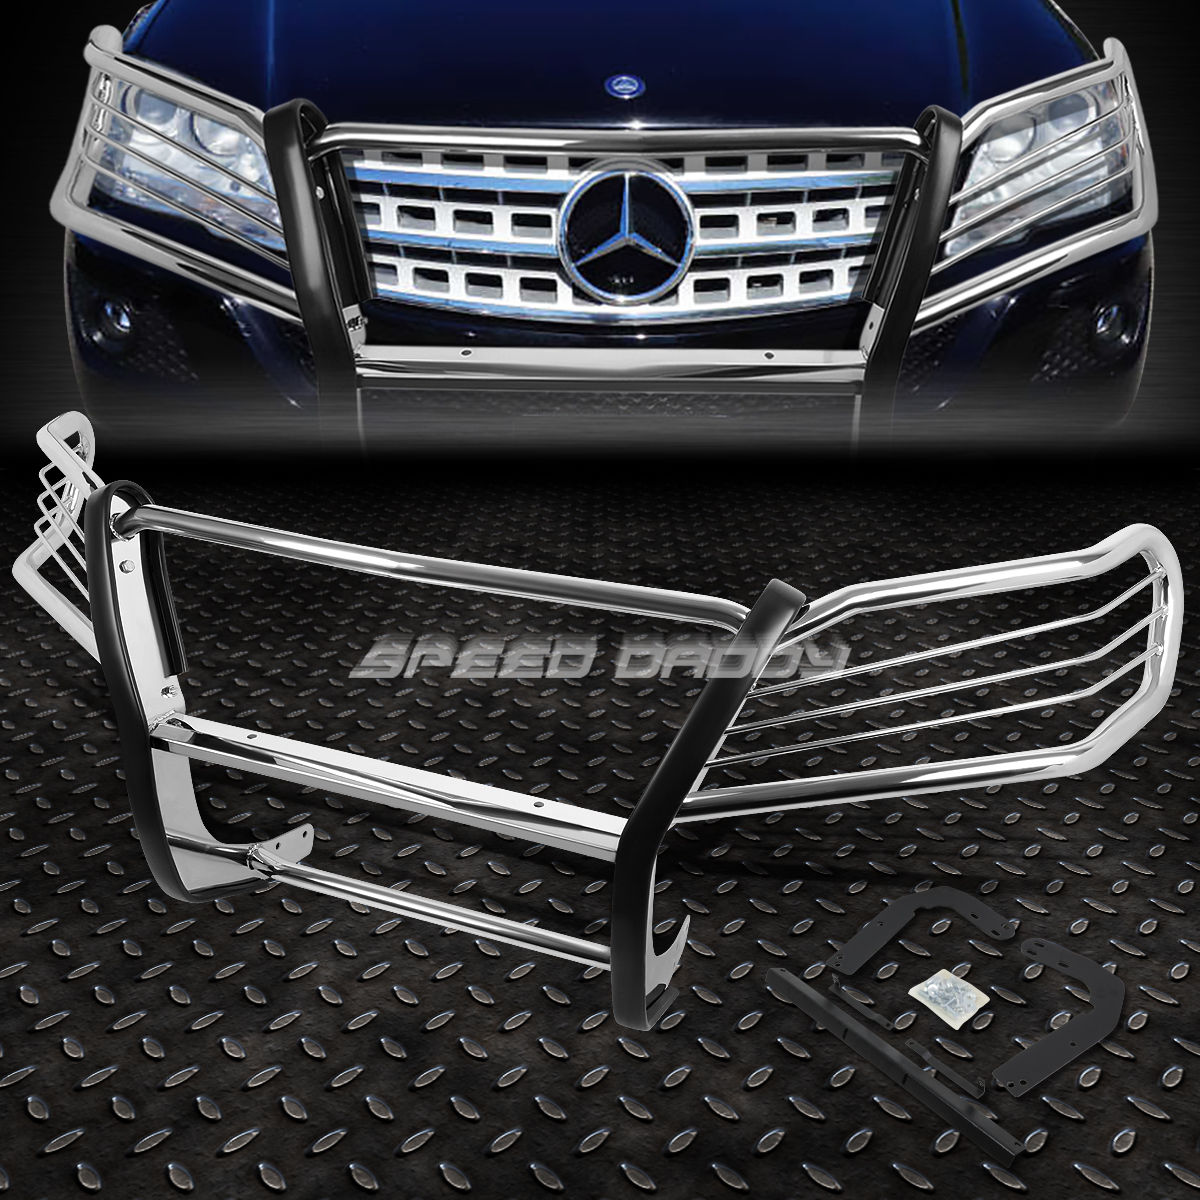 グリル クロムステンレスフロントバンパーグリルガード05-11 MERCEDES M-CLASS W164 CHROME STAINLESS STEEL FRONT BUMPER GRILL GUARD FOR 05-11 MERCEDES M-CLASS W164